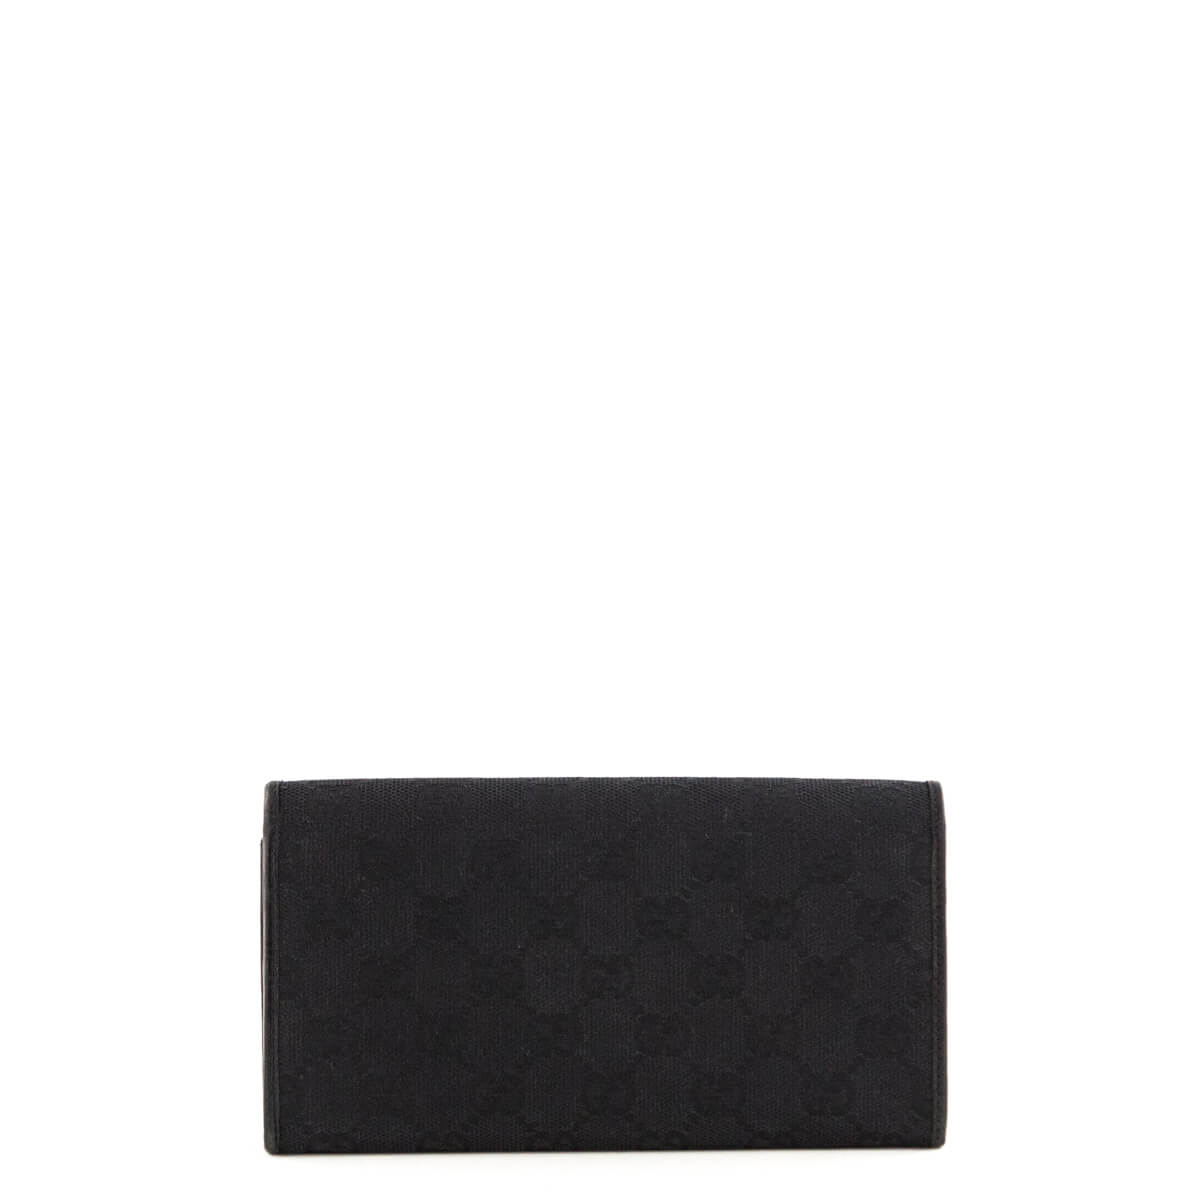 0474a5d20757 ... Gucci Black Monogram Canvas Bamboo Bar Wallet - LOVE that BAG -  Preowned Authentic Designer Handbags ...